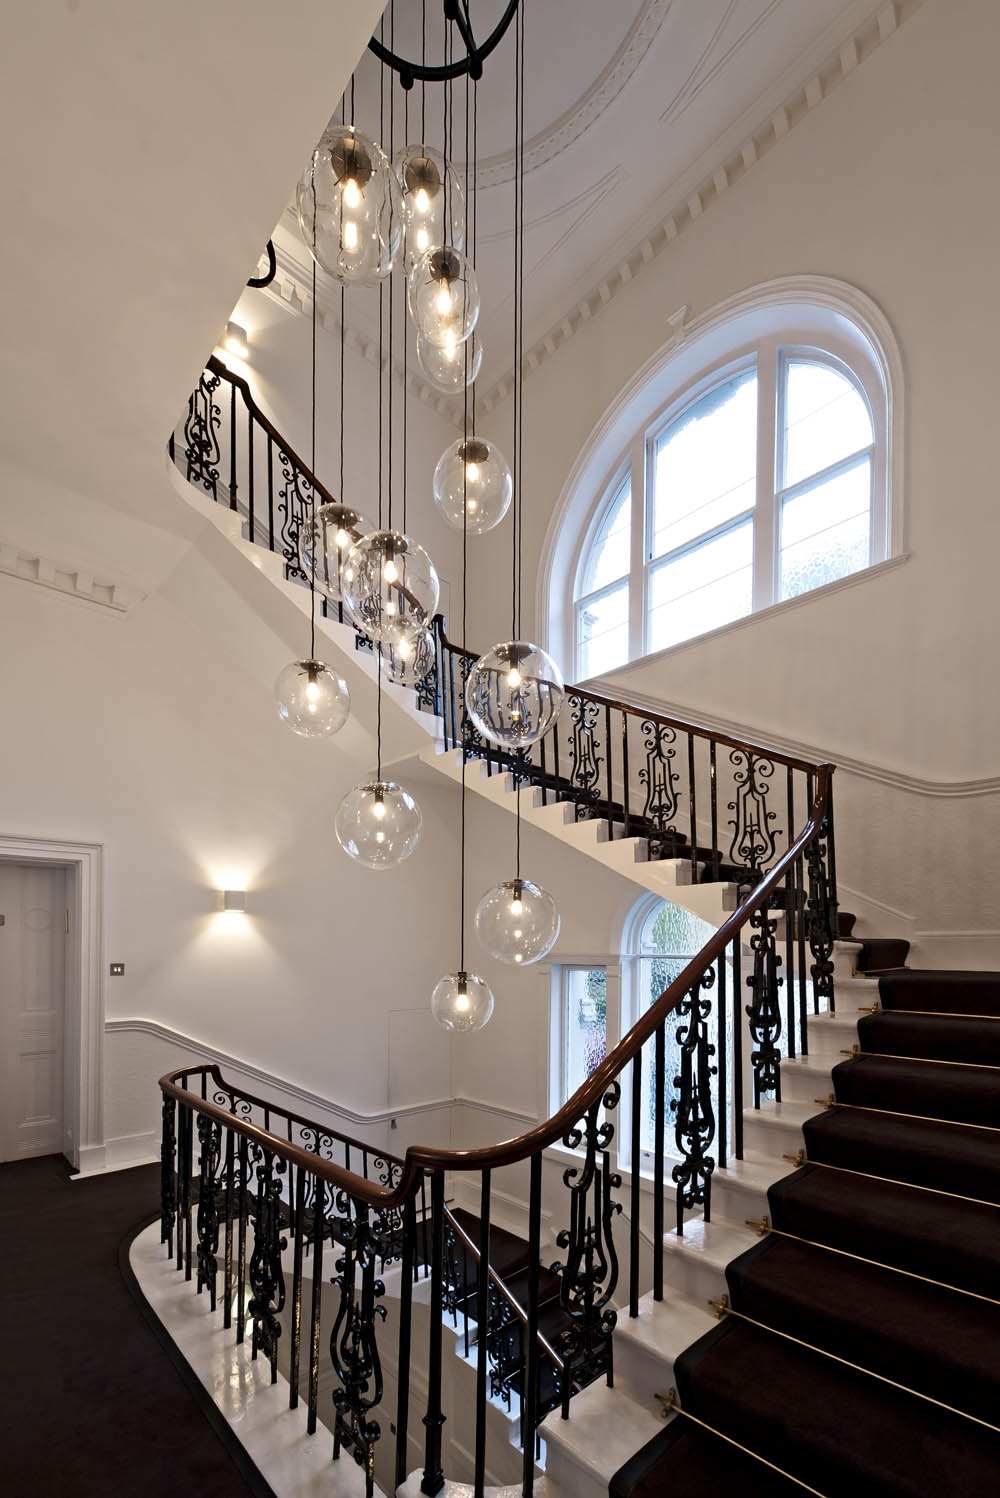 Popular Photo of Stairwell Chandeliers